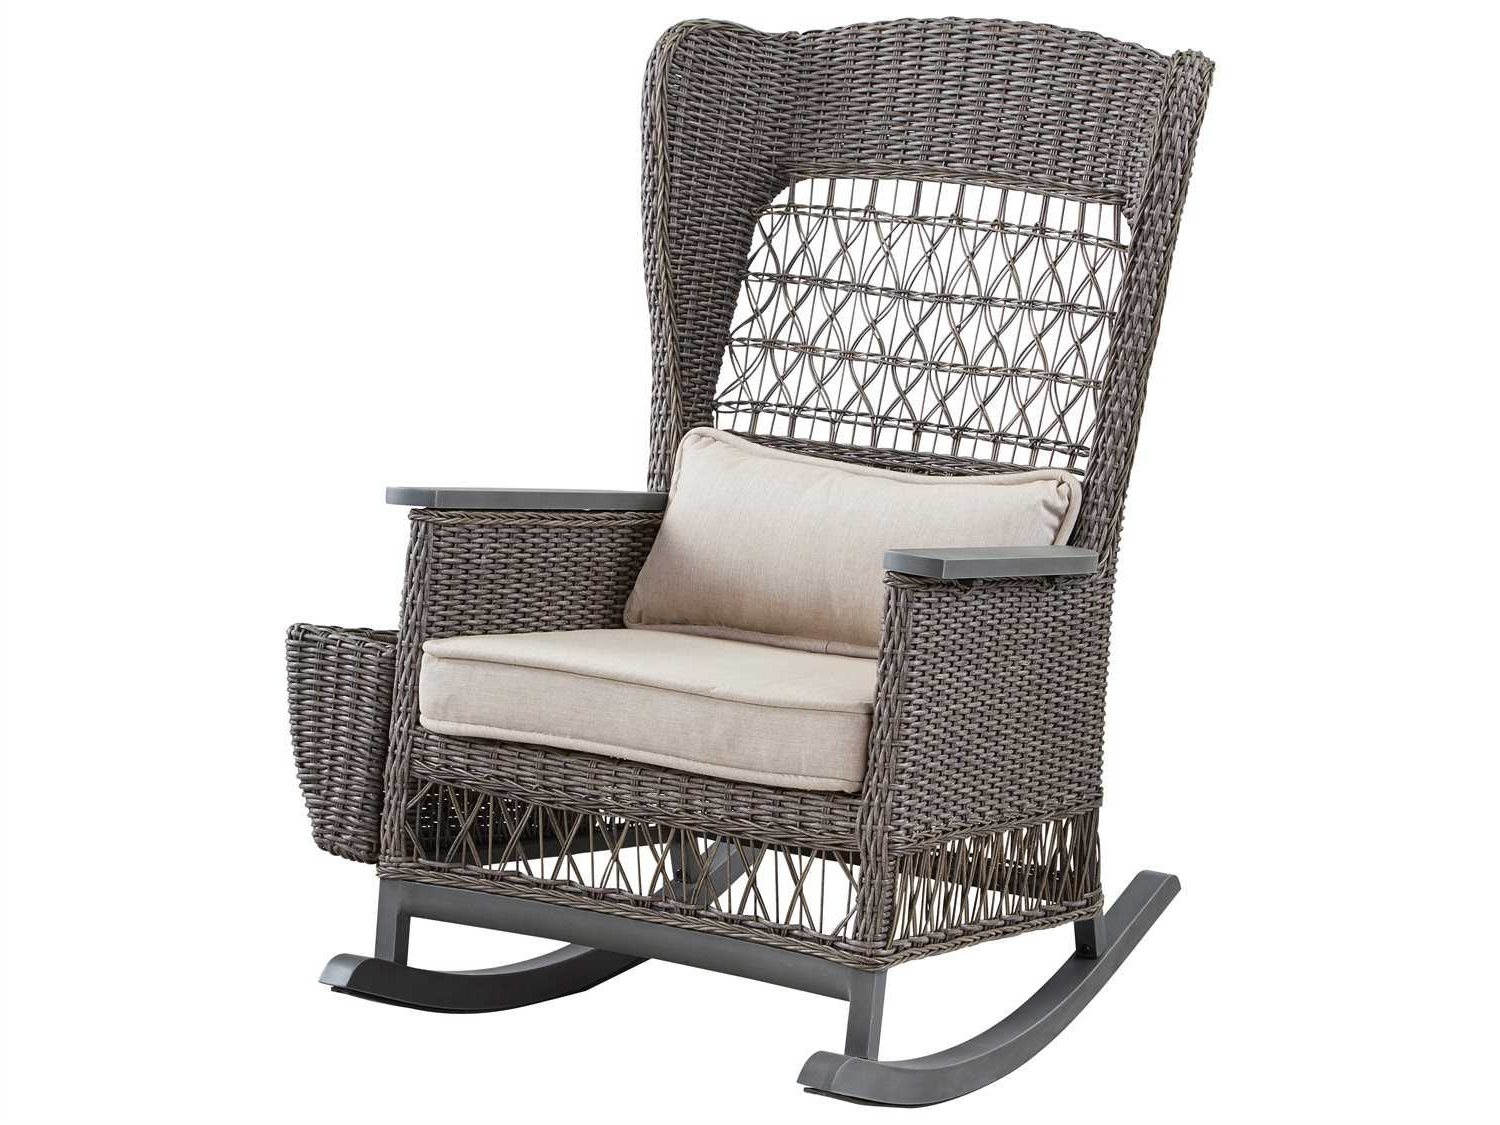 Rocking Chairs With Lumbar Support For Favorite Paula Deen Outdoor Dogwood Wicker Rocker Chair With Lumbar Pillow (View 13 of 20)